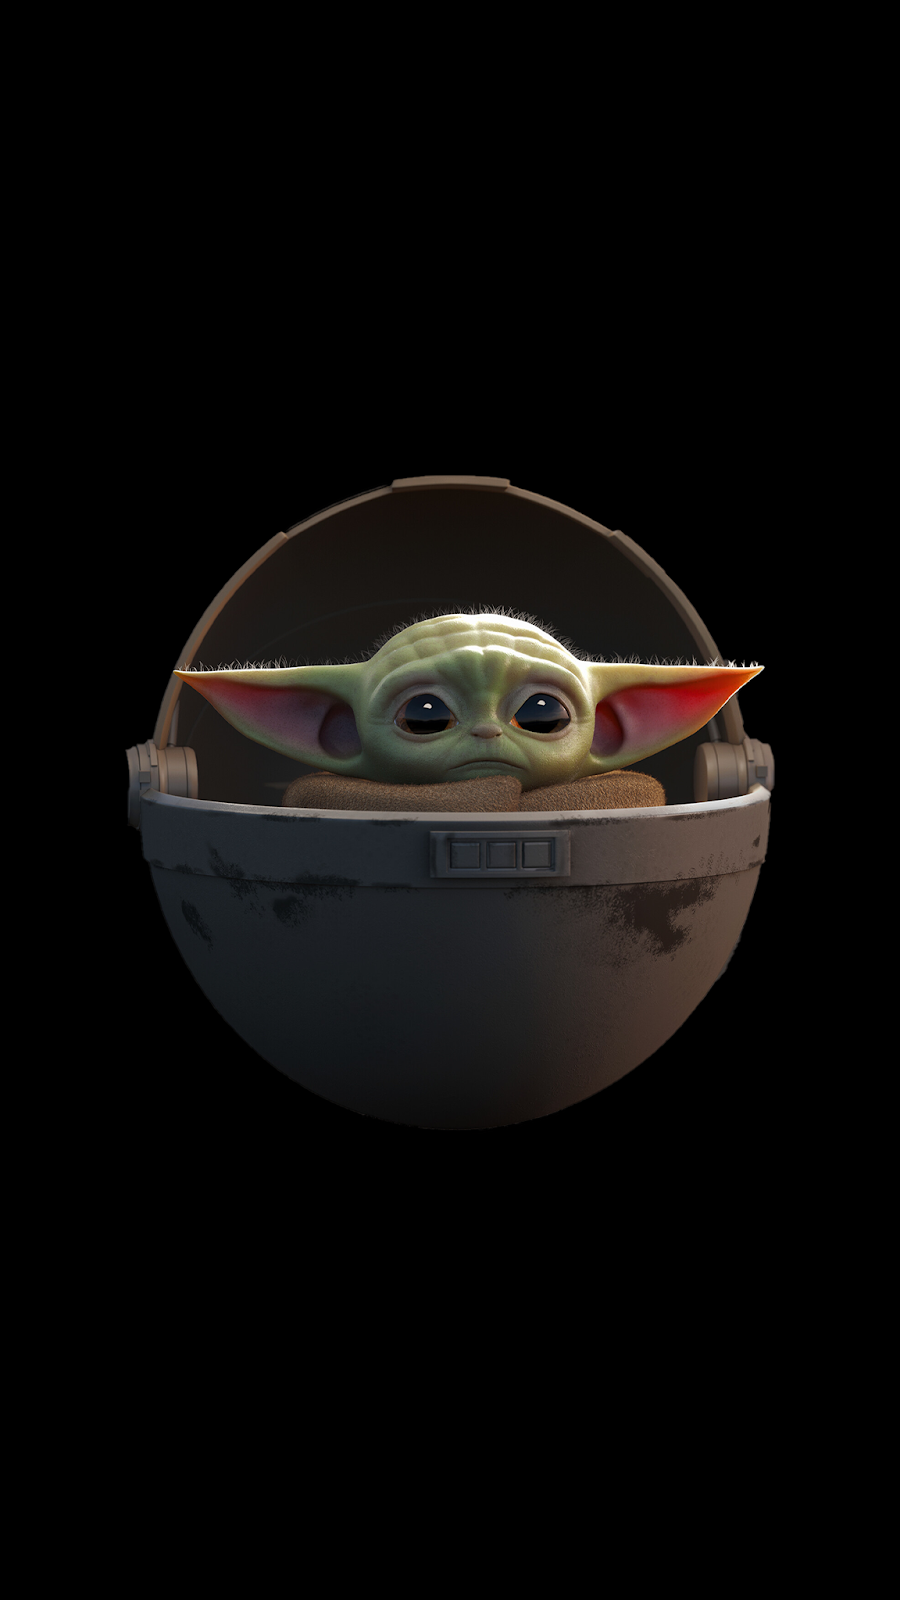 The Child Baby Yoda Phone Wallpaper Collection Cool Wallpapers Heroscreen Cc Star Wars Wallpaper Yoda Wallpaper Star Wars Poster